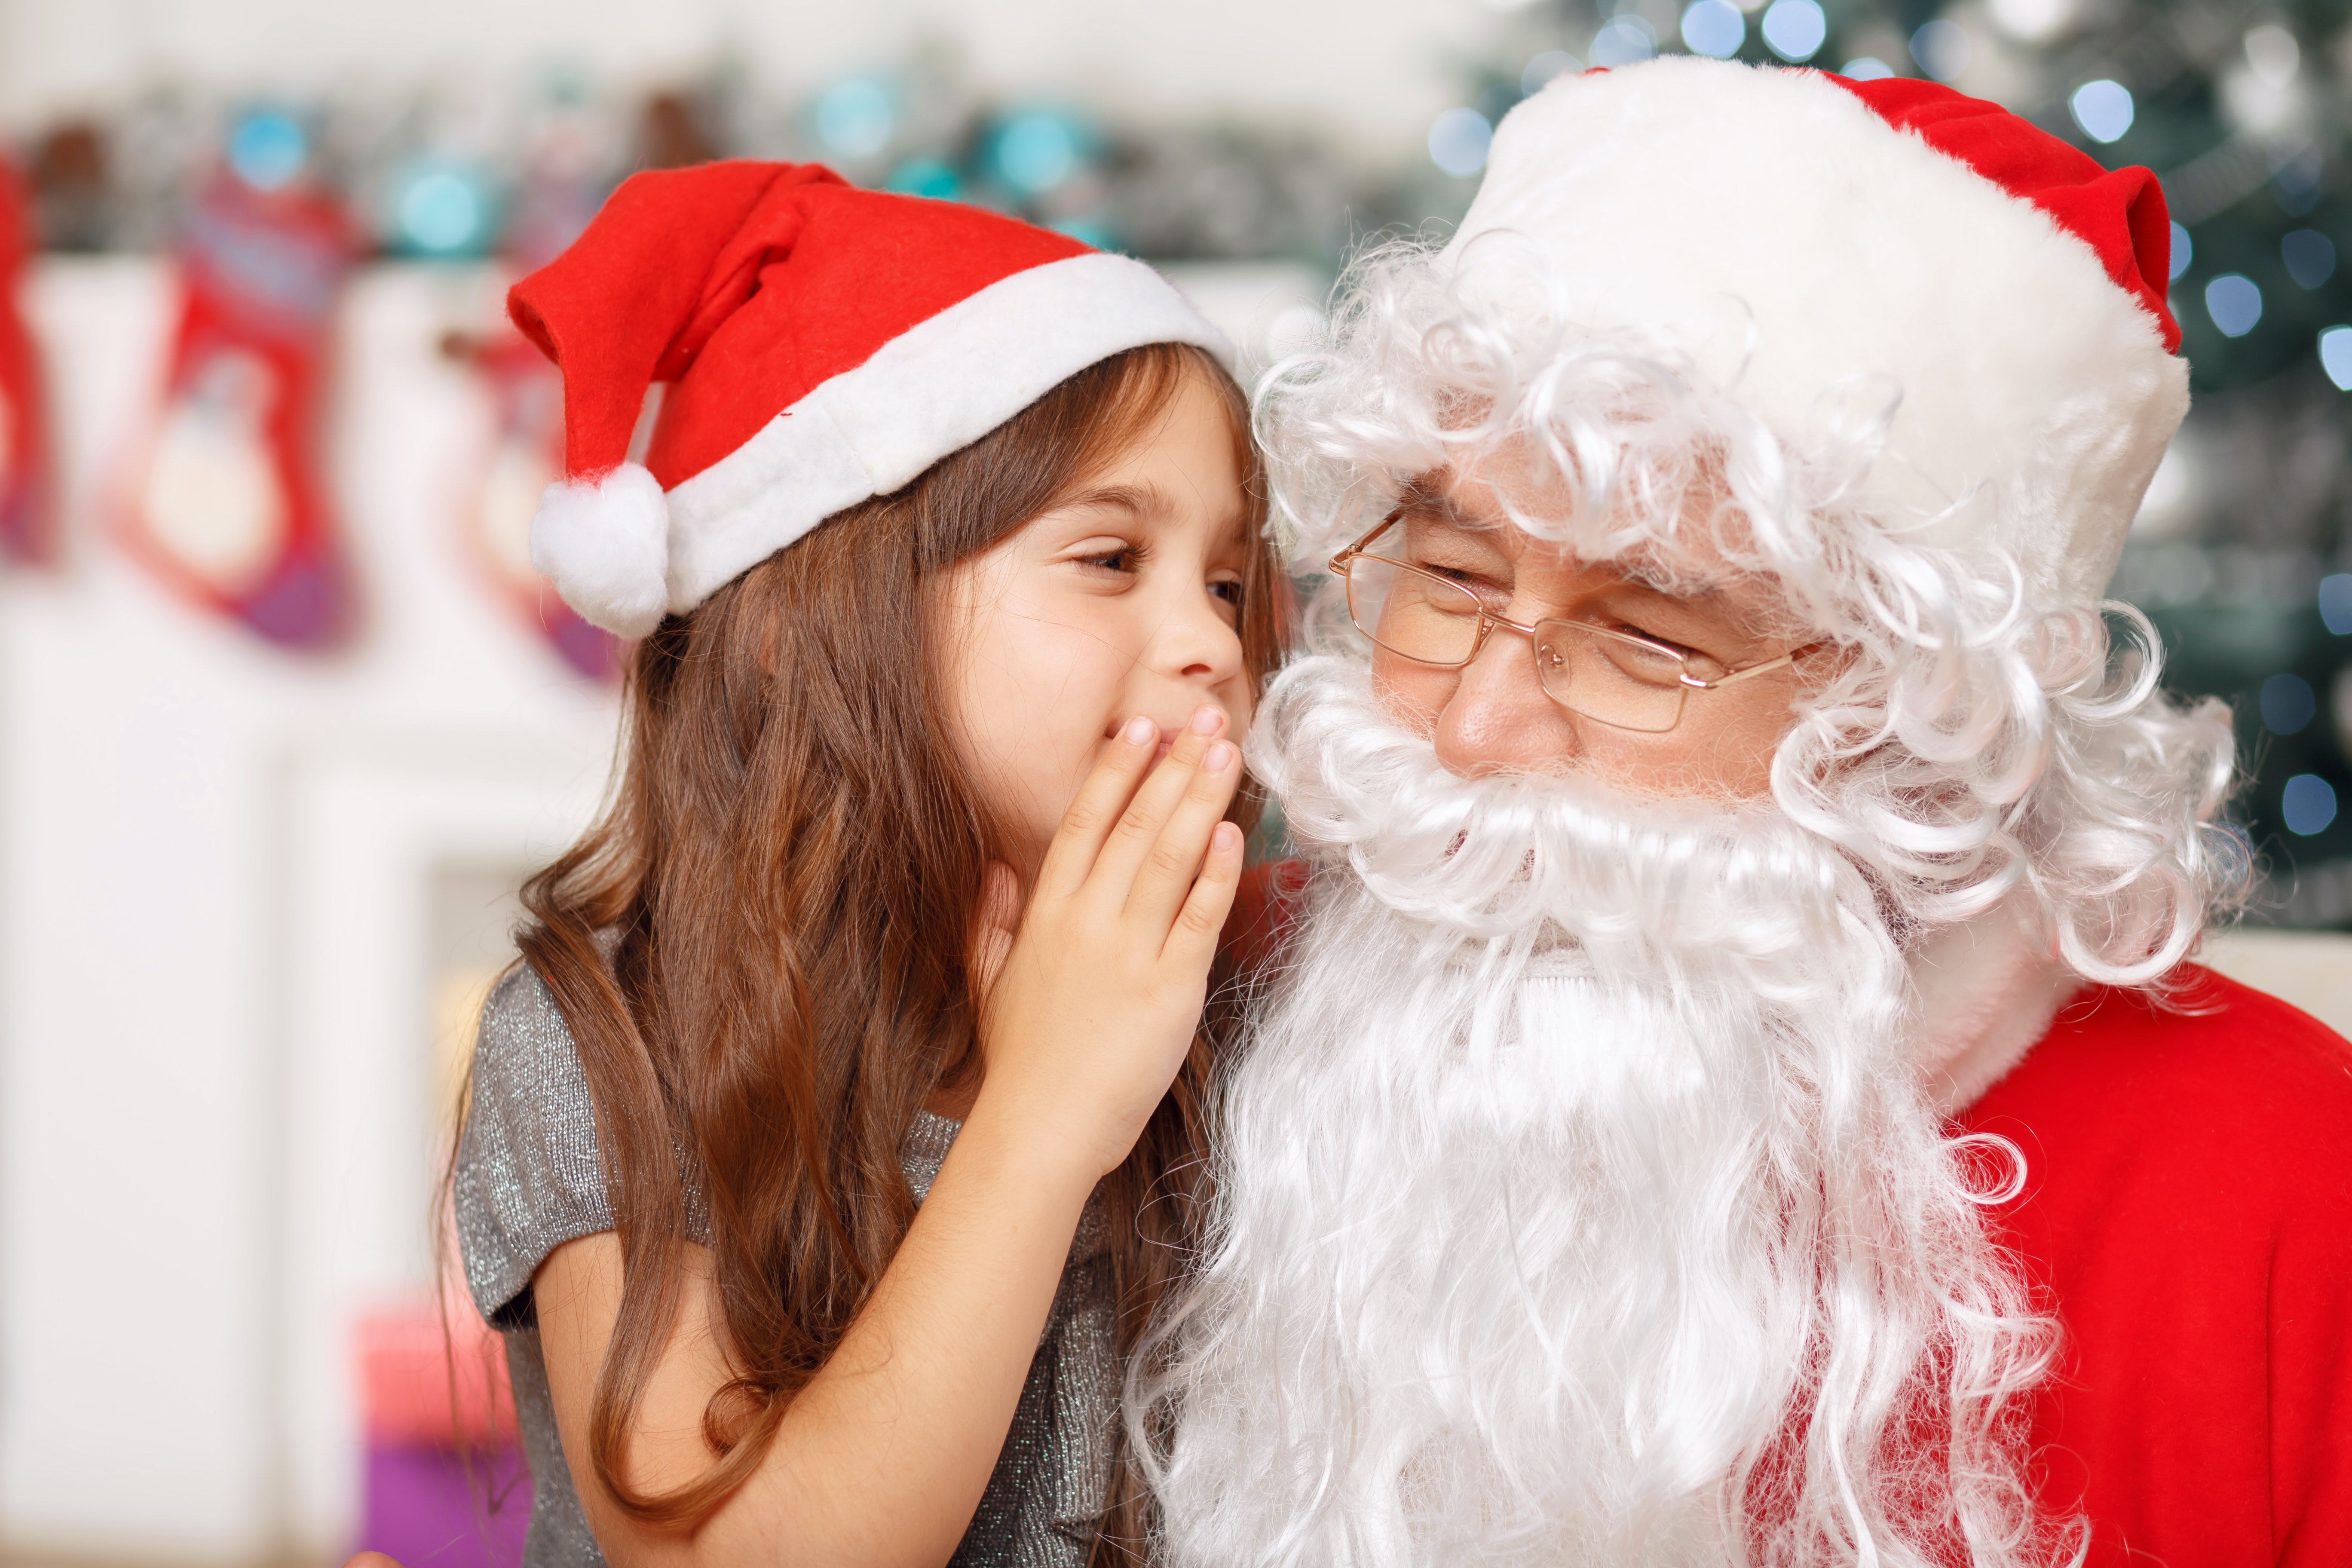 Developmental psychology suggests that fantastical beliefs in children are associated with positive developmental outcomes. And parents need not worry, children will bust the Santa myth themselves, when the time is right. (Shutterstock)